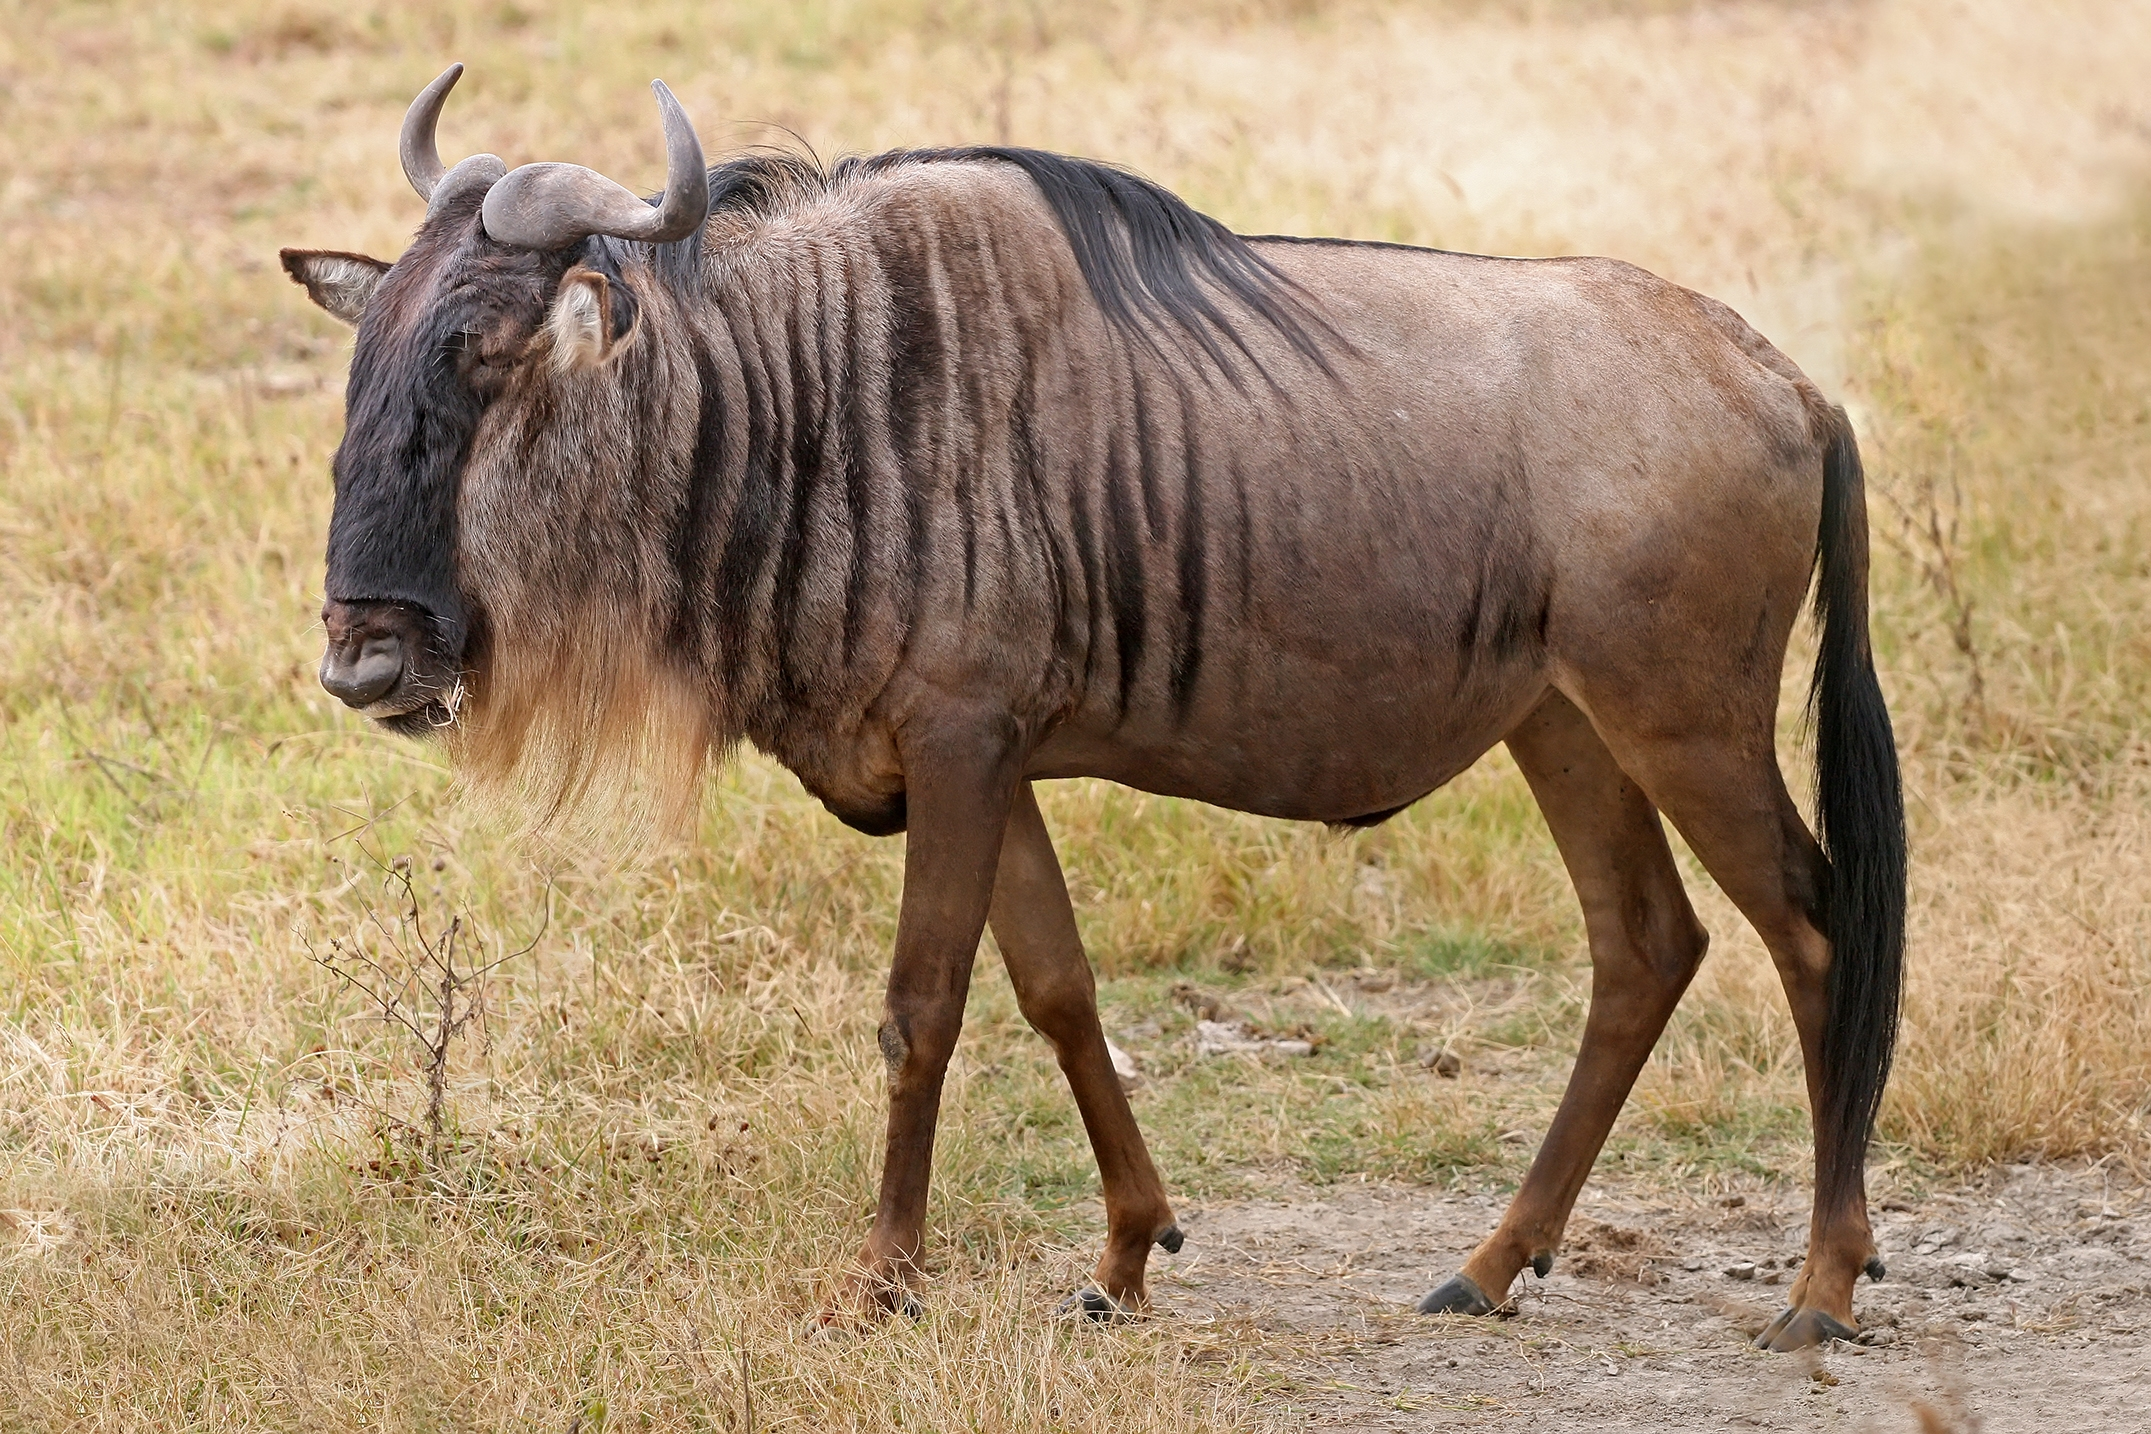 119568 download wallpaper Animals, Antelope, Grass, Stroll screensavers and pictures for free